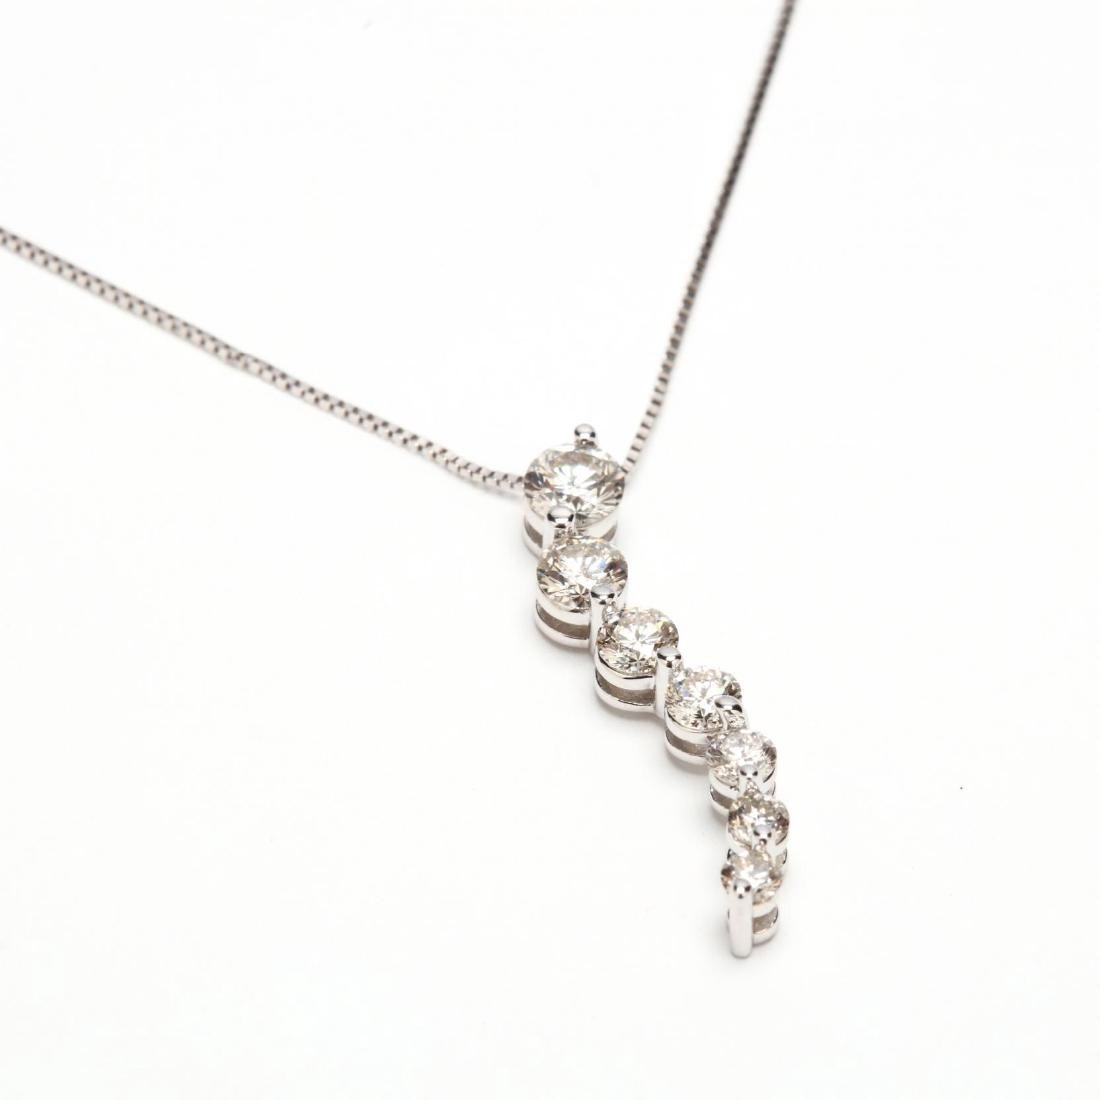 14KT White Gold and Diamond Journey Necklace